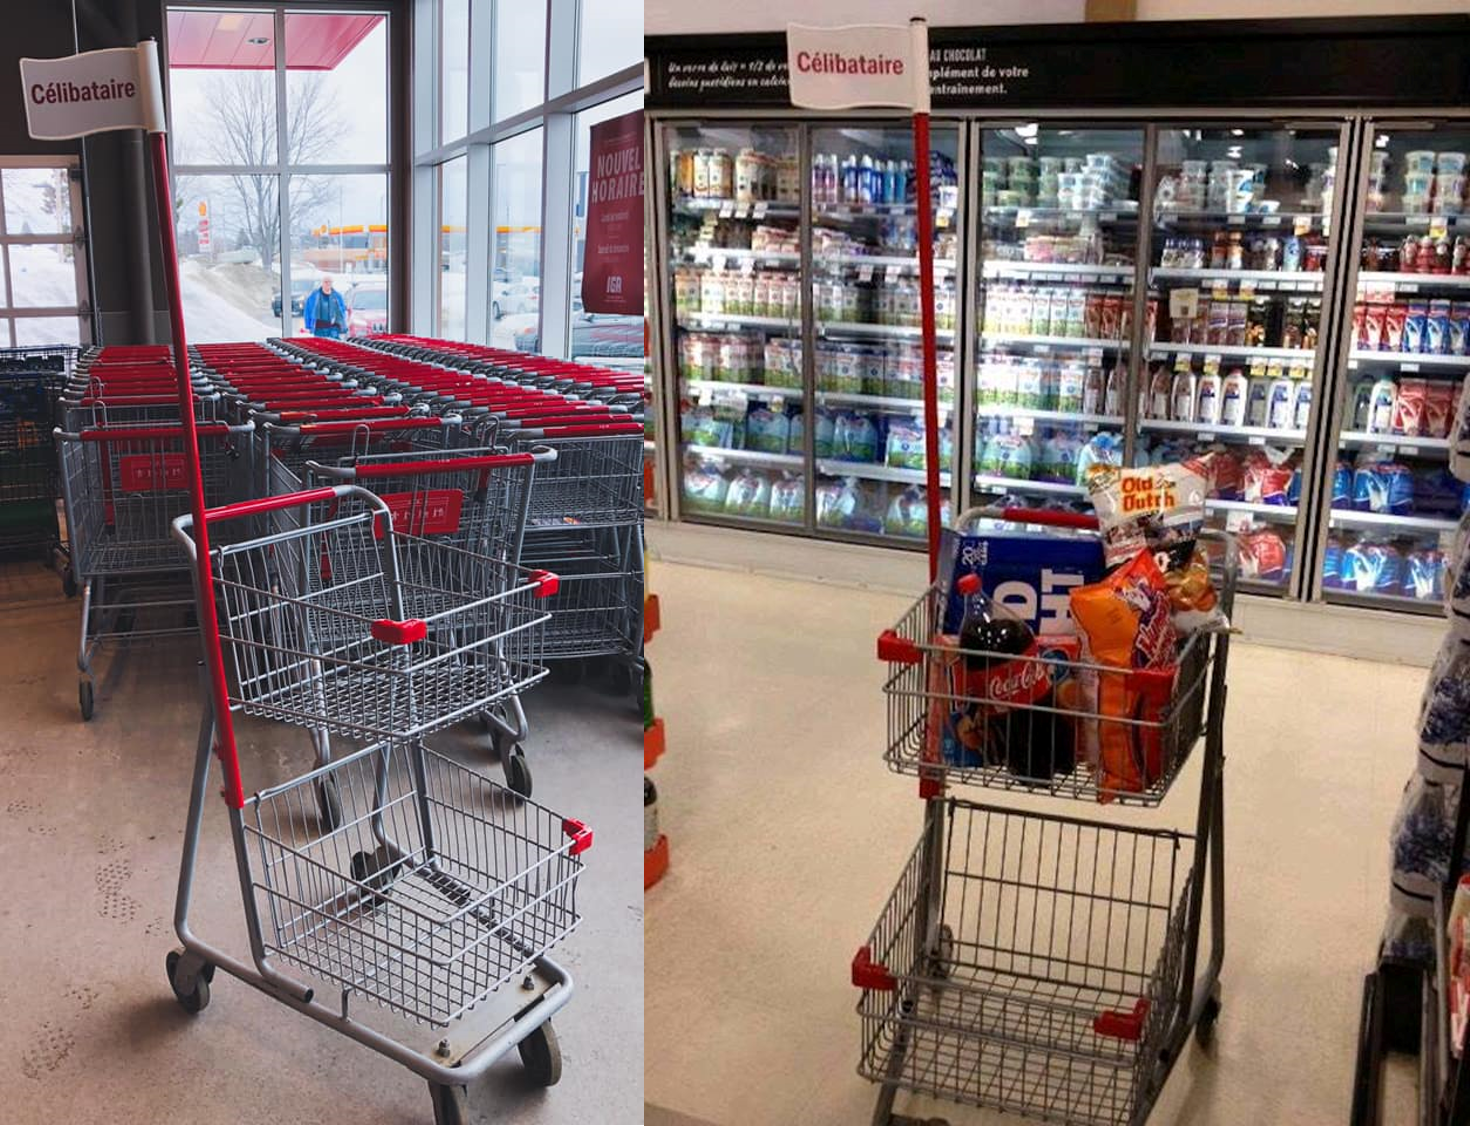 iga-canada-supermarché-chariot-celibataire-retail-missions-mmm